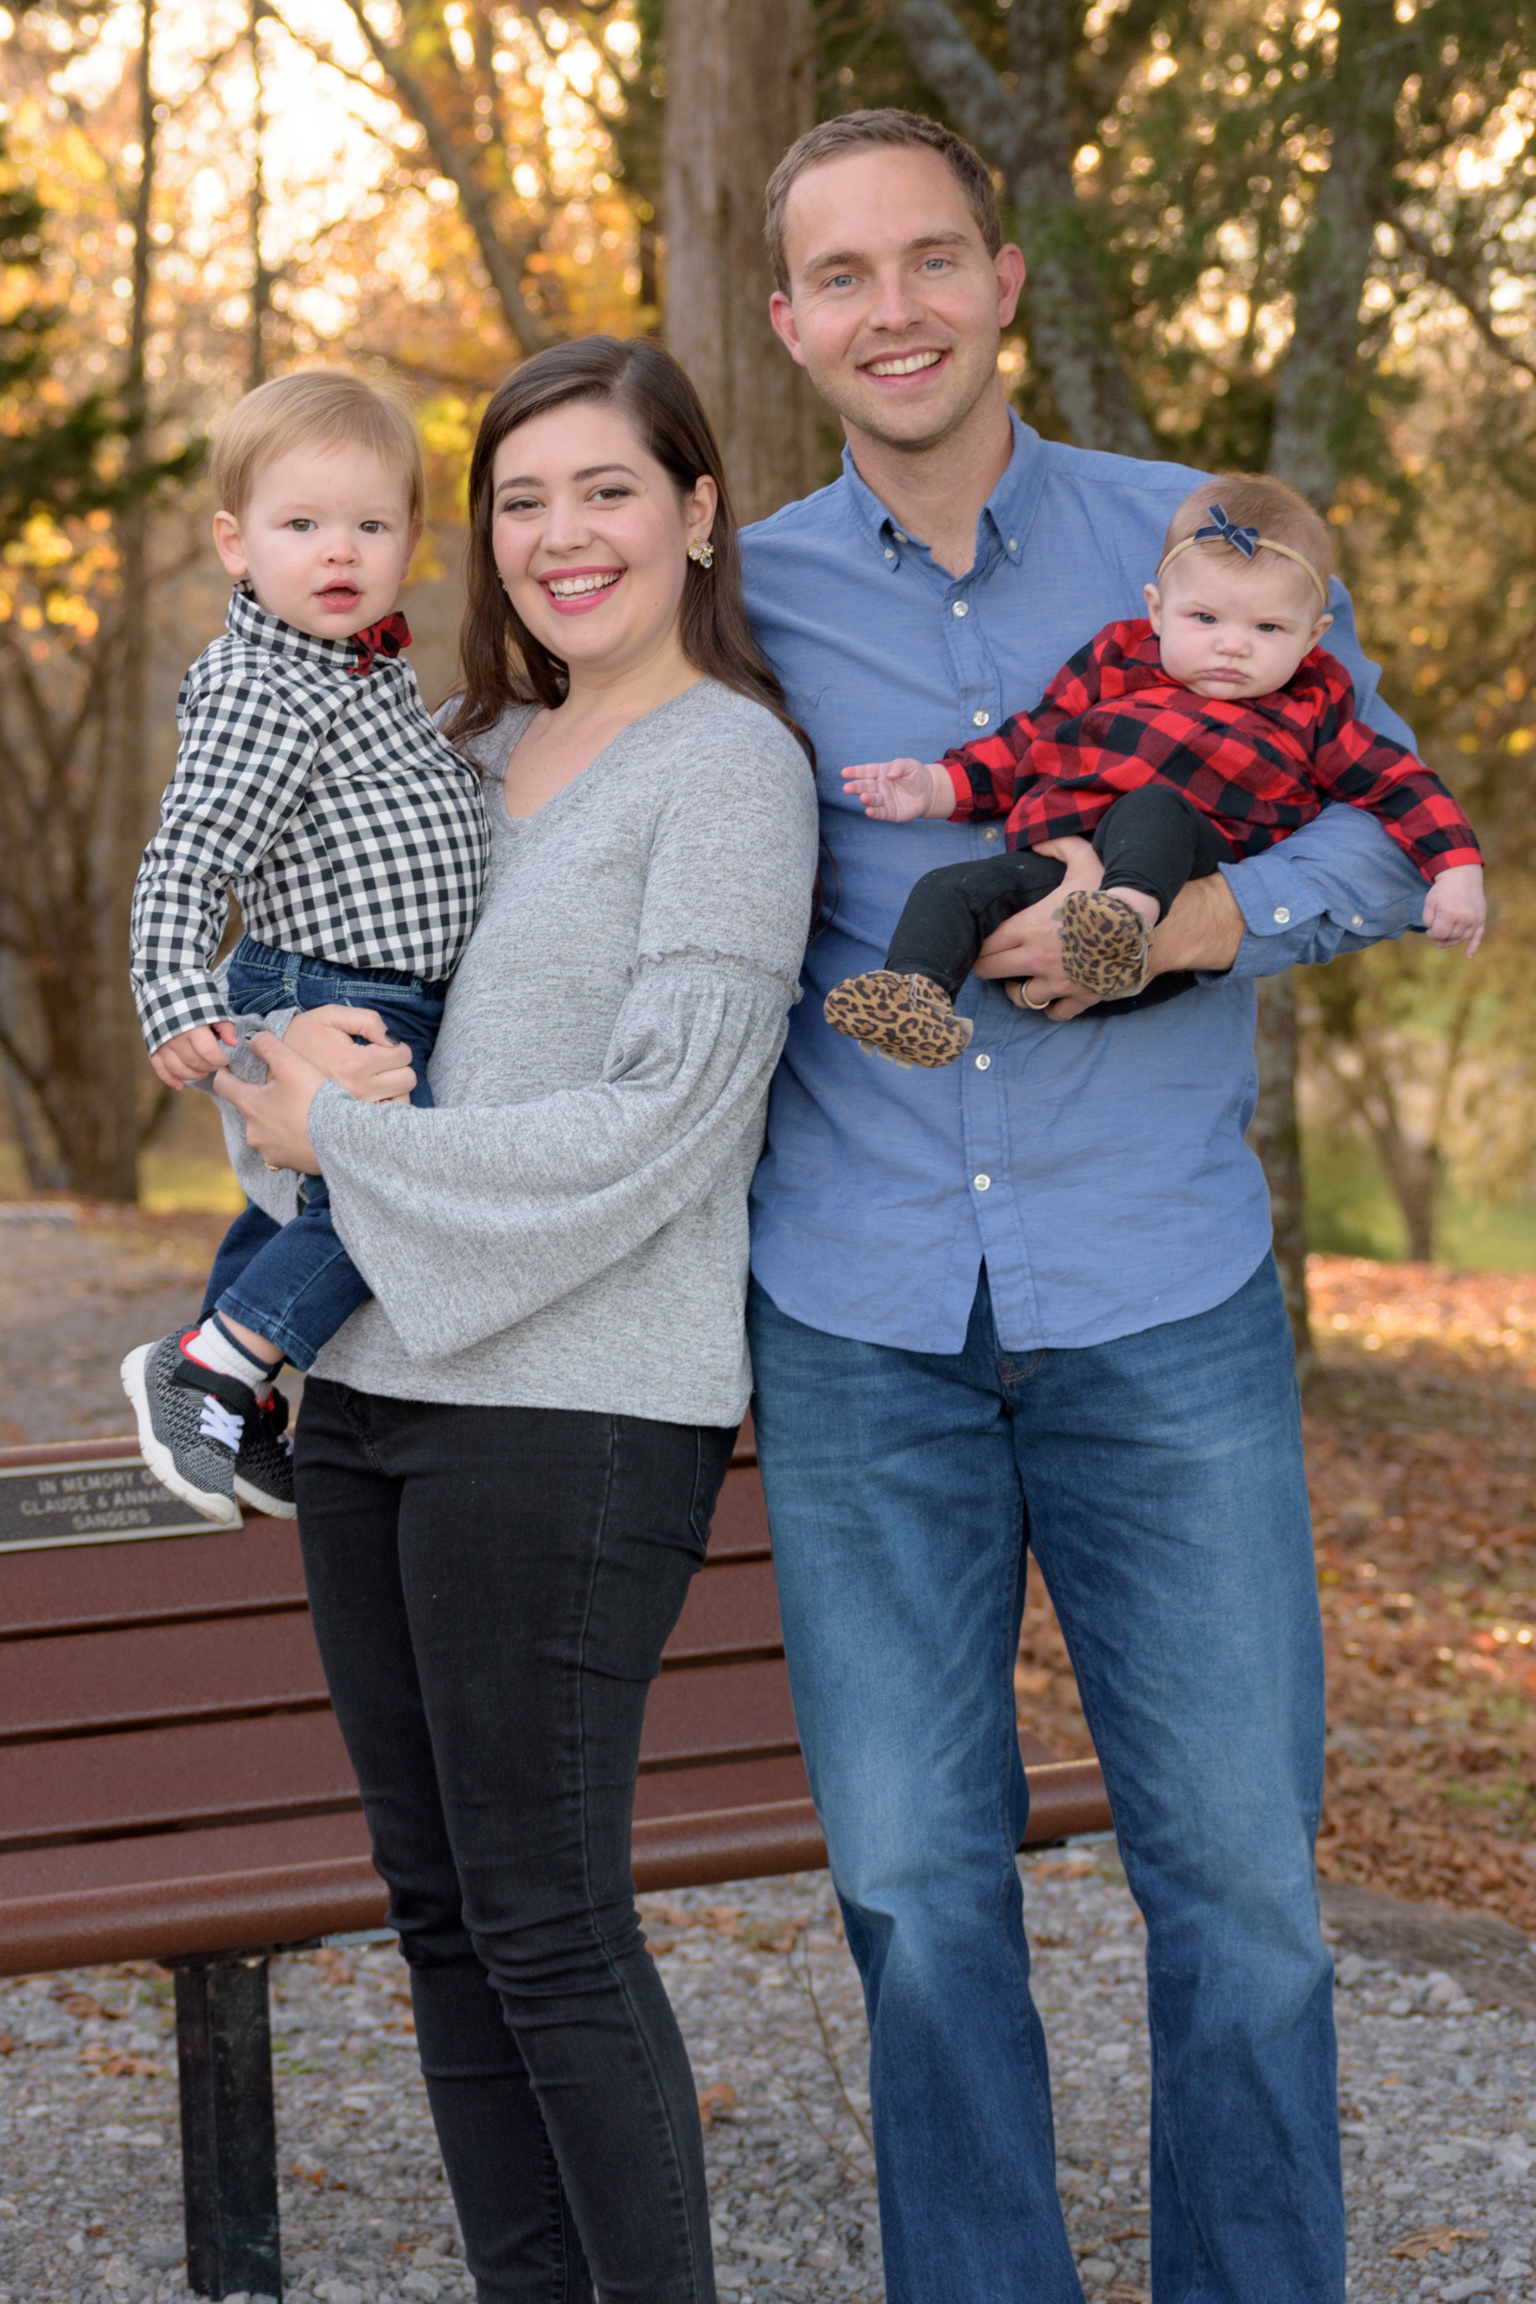 Hey There! - I am so glad you're here! My name is Stephanie Sutherland.I am a wife, mama, and instructional coach living right outside of Nashville, TN. I have my Masters in elementary teaching, and 6 years of teaching/coaching experience under my belt, and education is still my favorite thing to study, talk about, read about, etc.My husband, Chris, and I have two babies: Isaiah (who is almost 2 and I can't really talk about it), and Josephine, who is about 9 months old. They are our entire world, and raising little people is the best privilege I've ever had.This website is a collection of all of the things I do. I design curriculum and have a TPT store (The Tennessee Classroom), I blog, and I provide services to teacherpreneurs who are growing their businesses, but feel weighed down by all of the little things that come along with it.So, whether you're here for some VA help, to read my blog, see my products, or just want to know a little bit more about what I'm like, welcome! I'm excited to share with you, and hopefully work with you in some capacity!Welcome to the Tennessee Classroom.